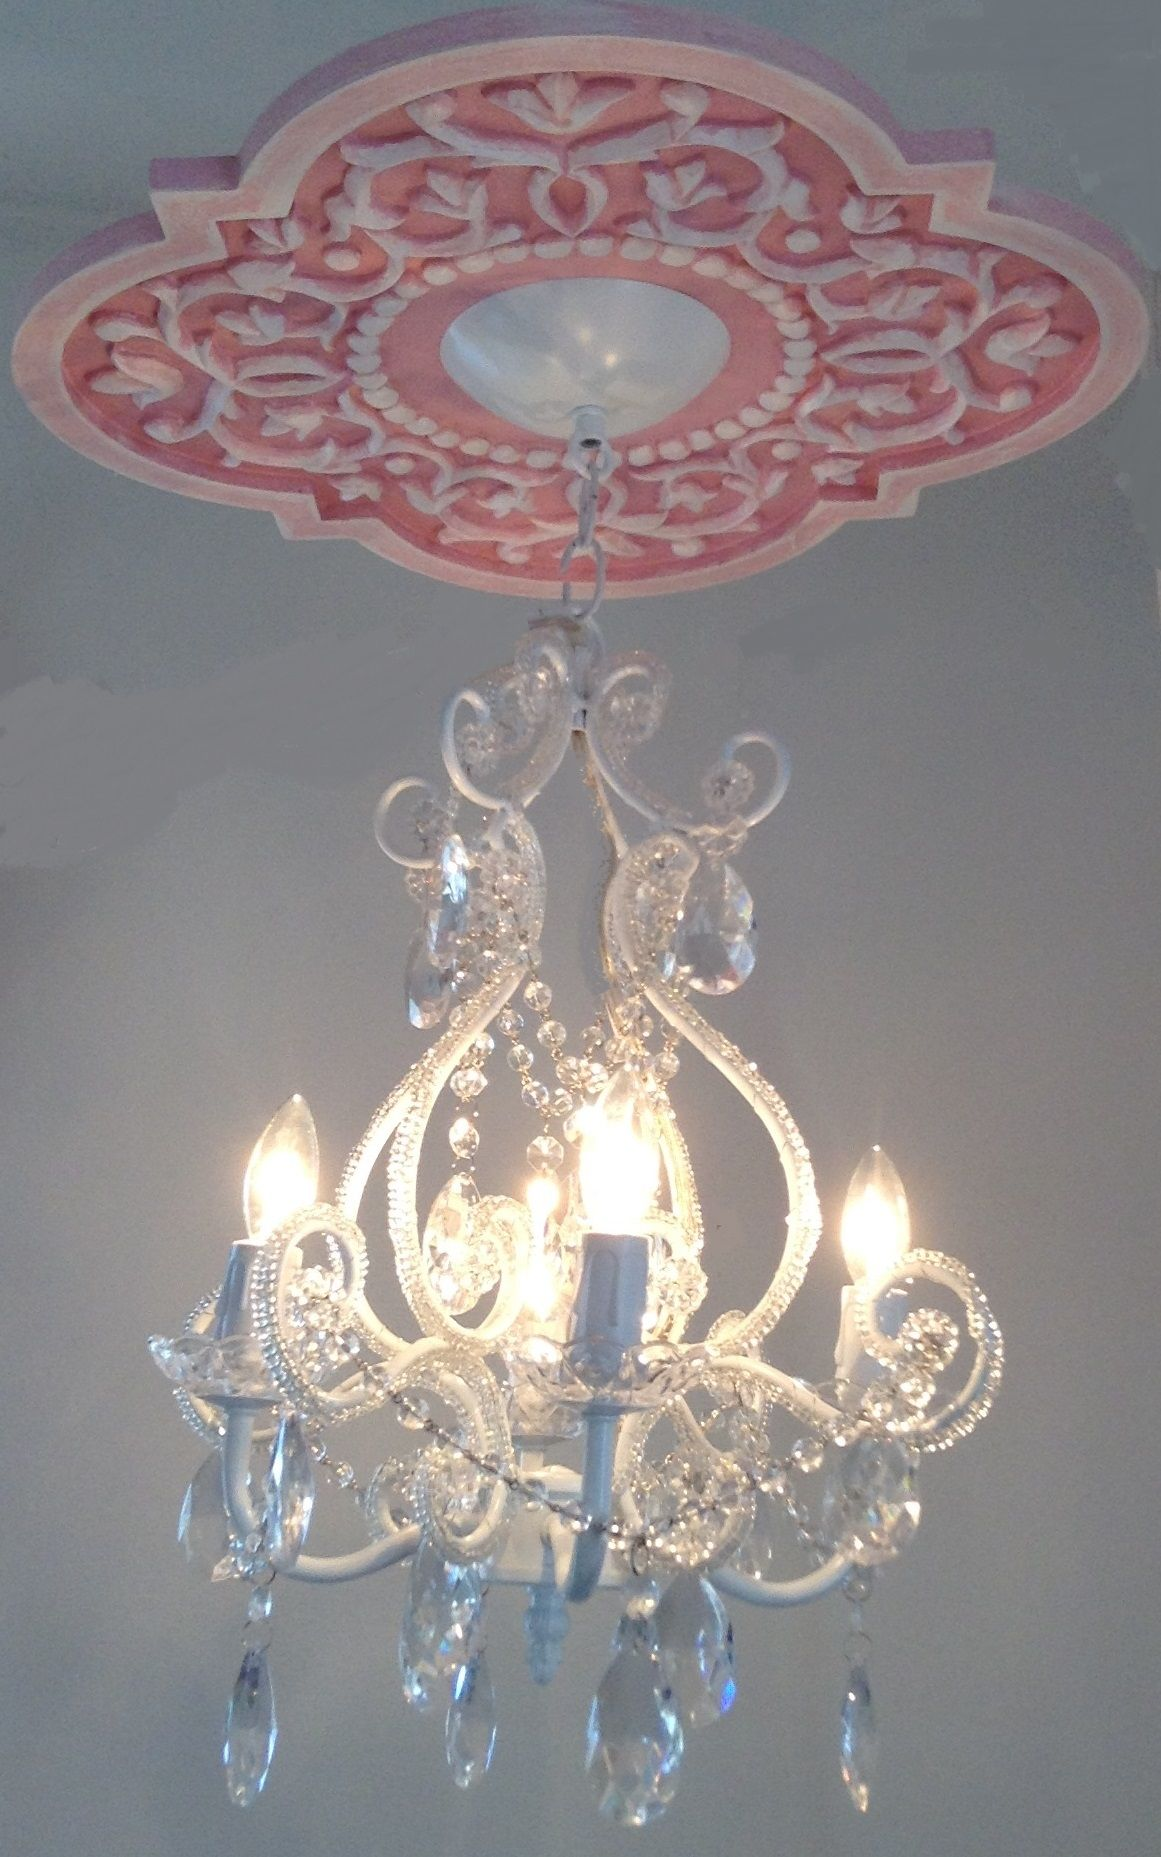 Ceiling Medallion by Marie Ricci with 4 arm white chandelier